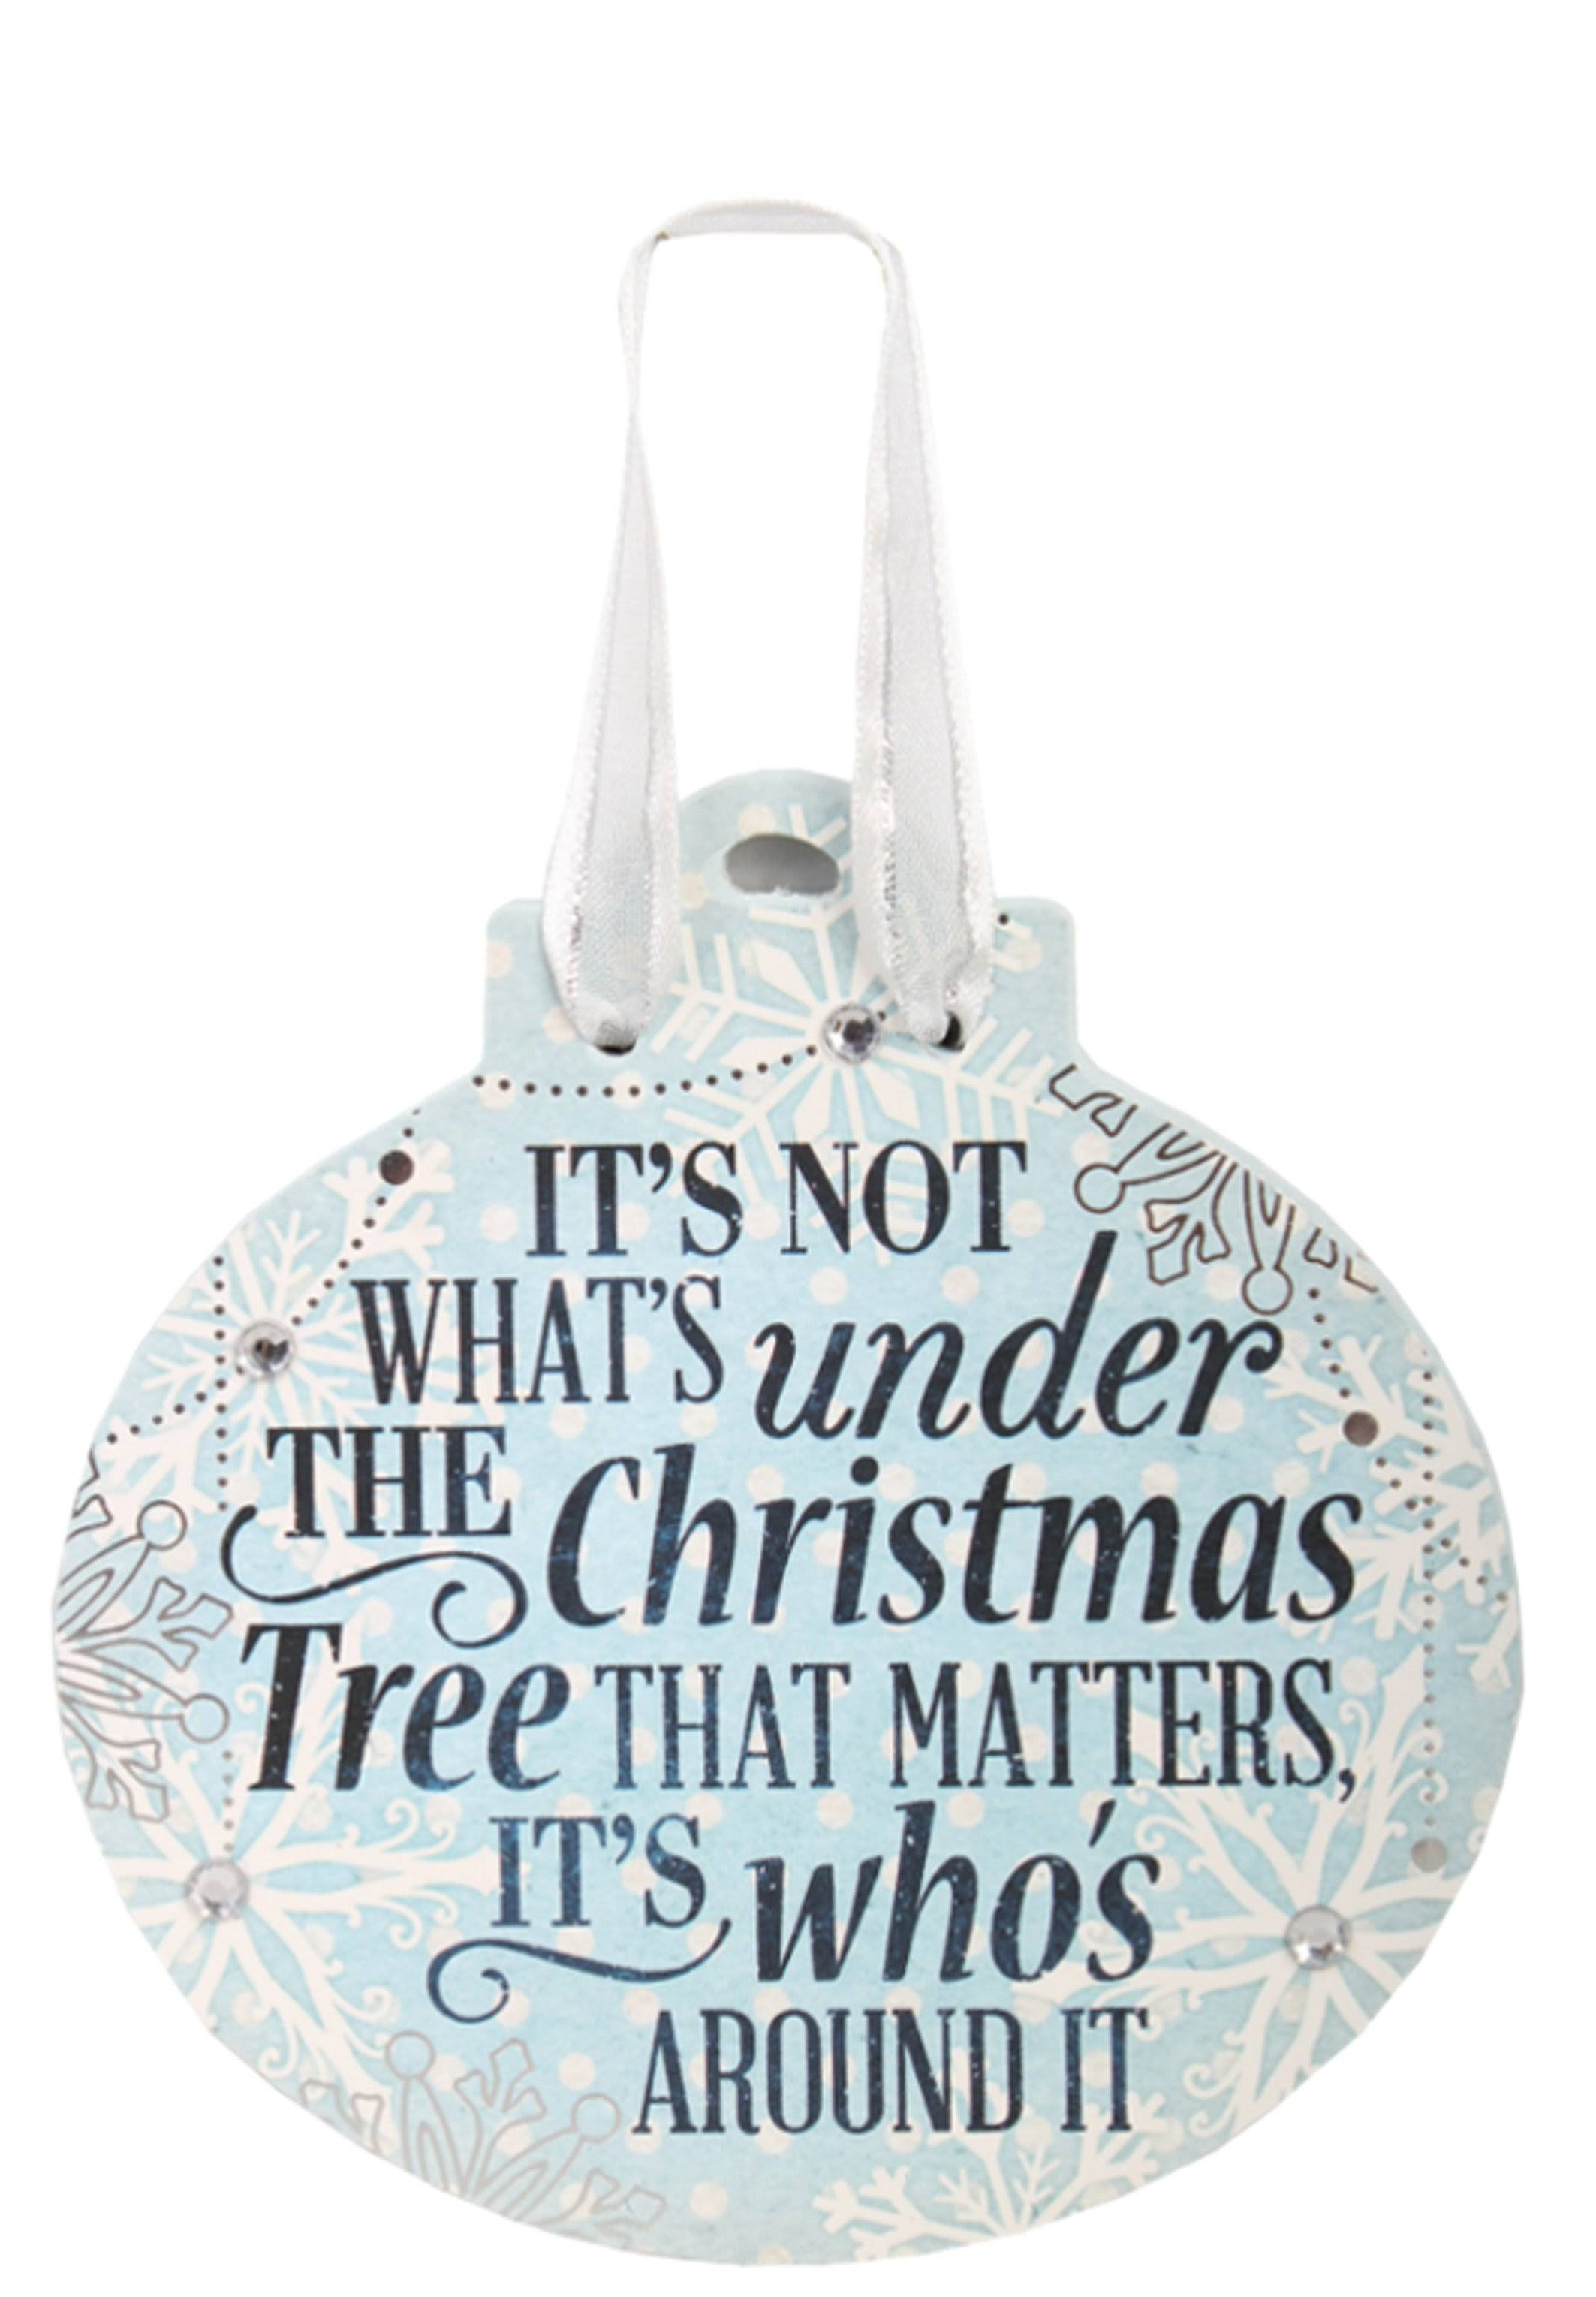 Festive Word Hanging Ornament - It's Not What's Under The